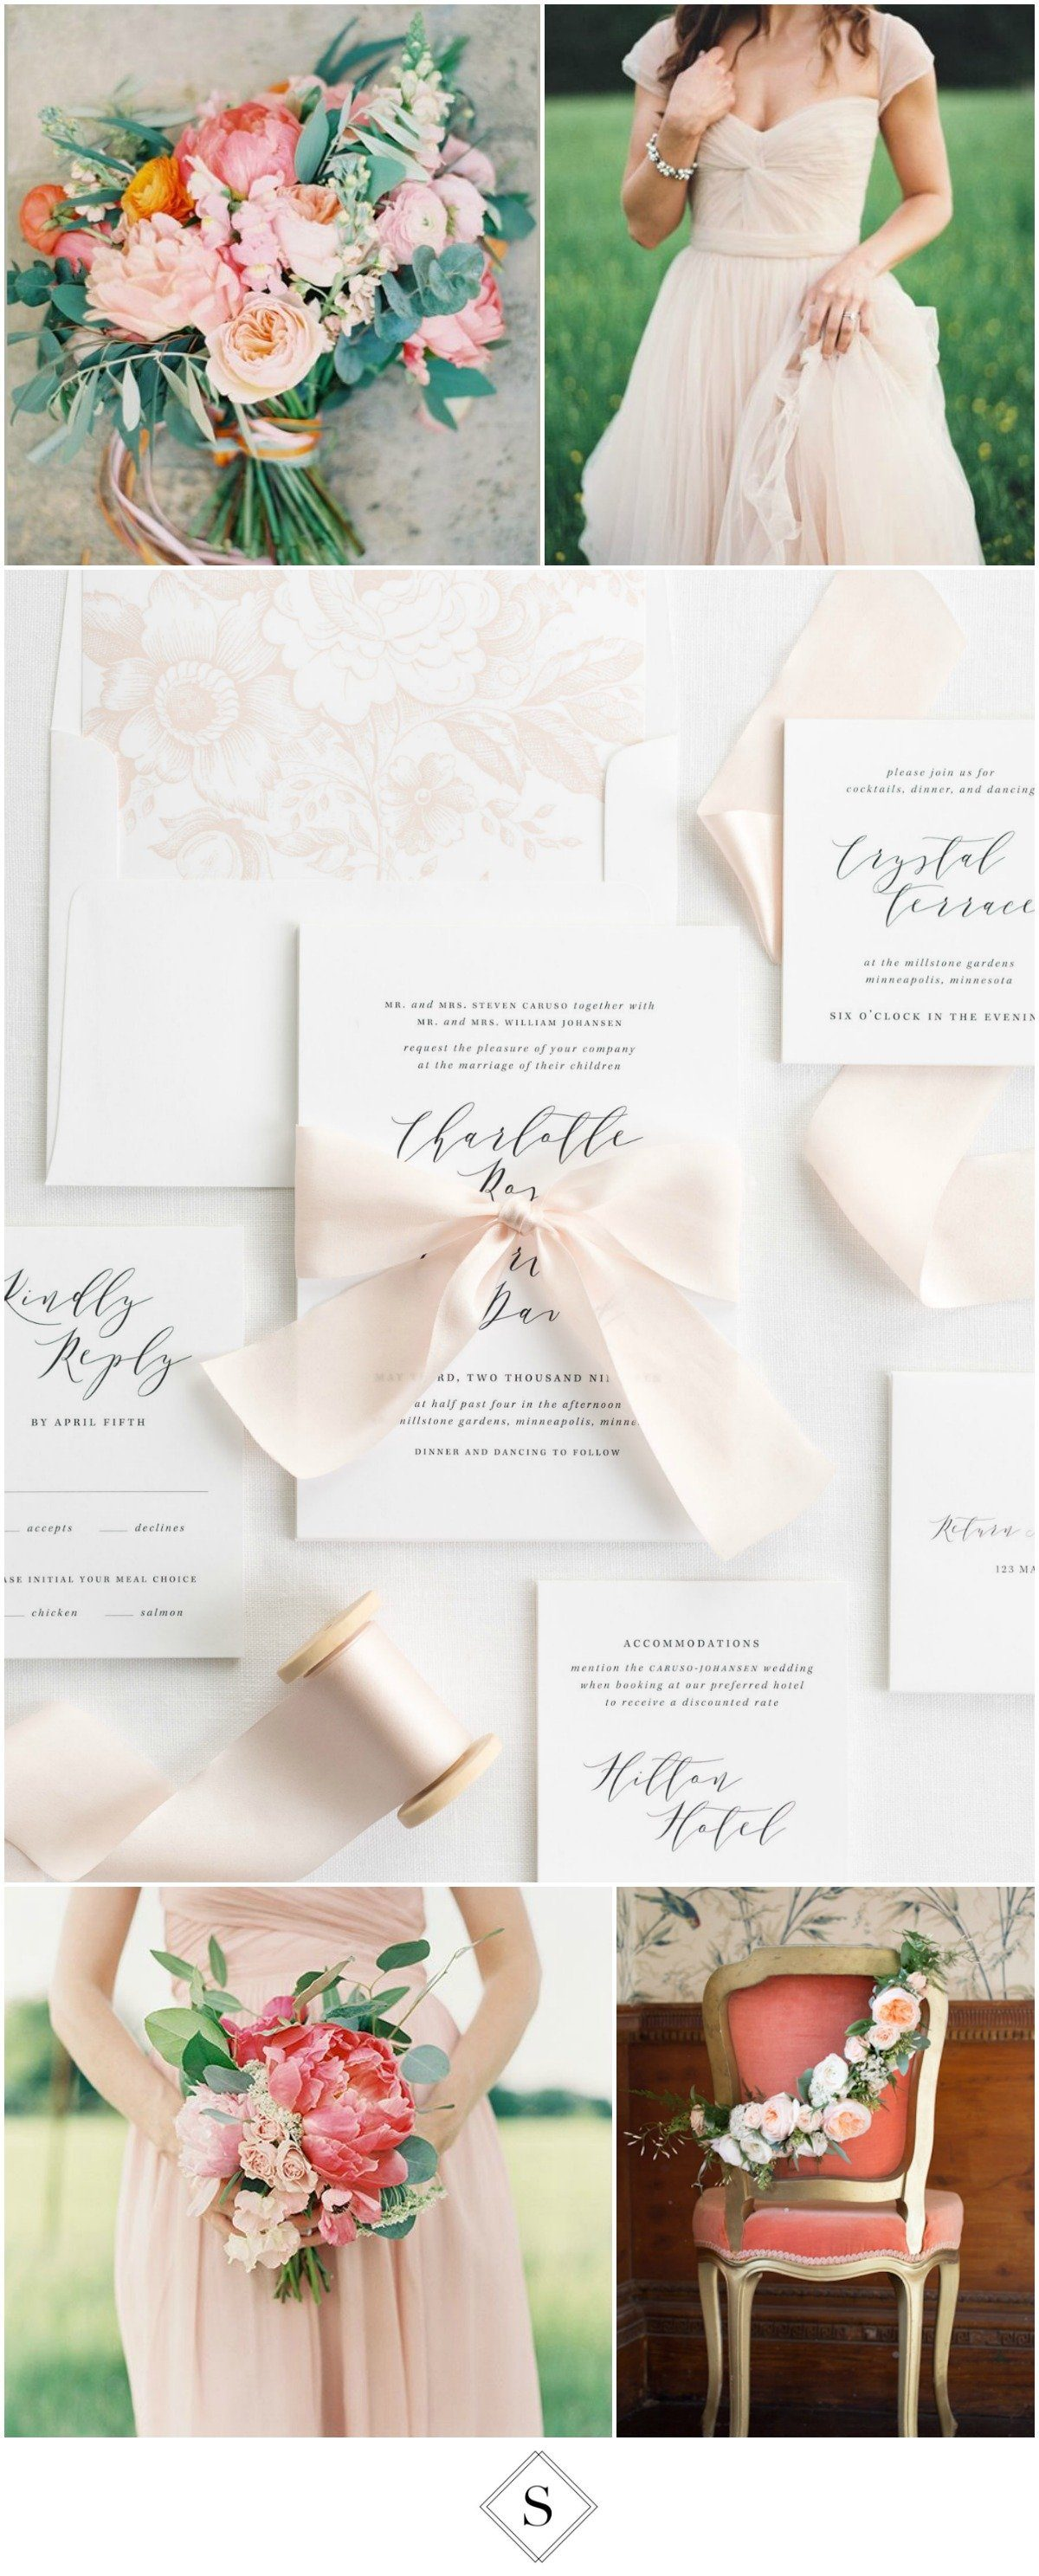 Calligraphy Ribbon Invitations with a floral blush envelope liner